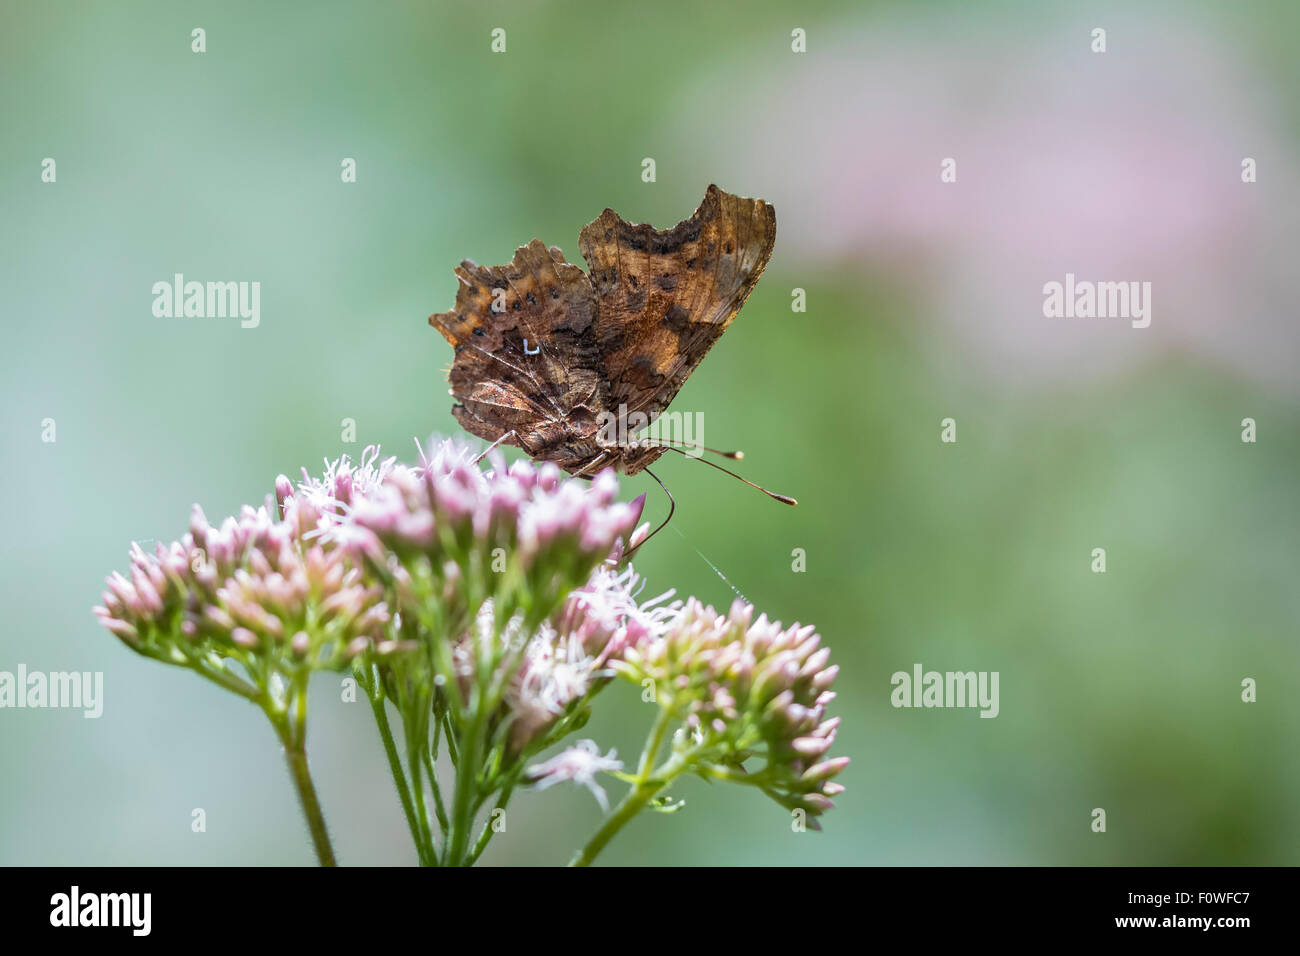 Comma butterfly (Polygonia c-album) eating nectar from flowers in grassland - Stock Image